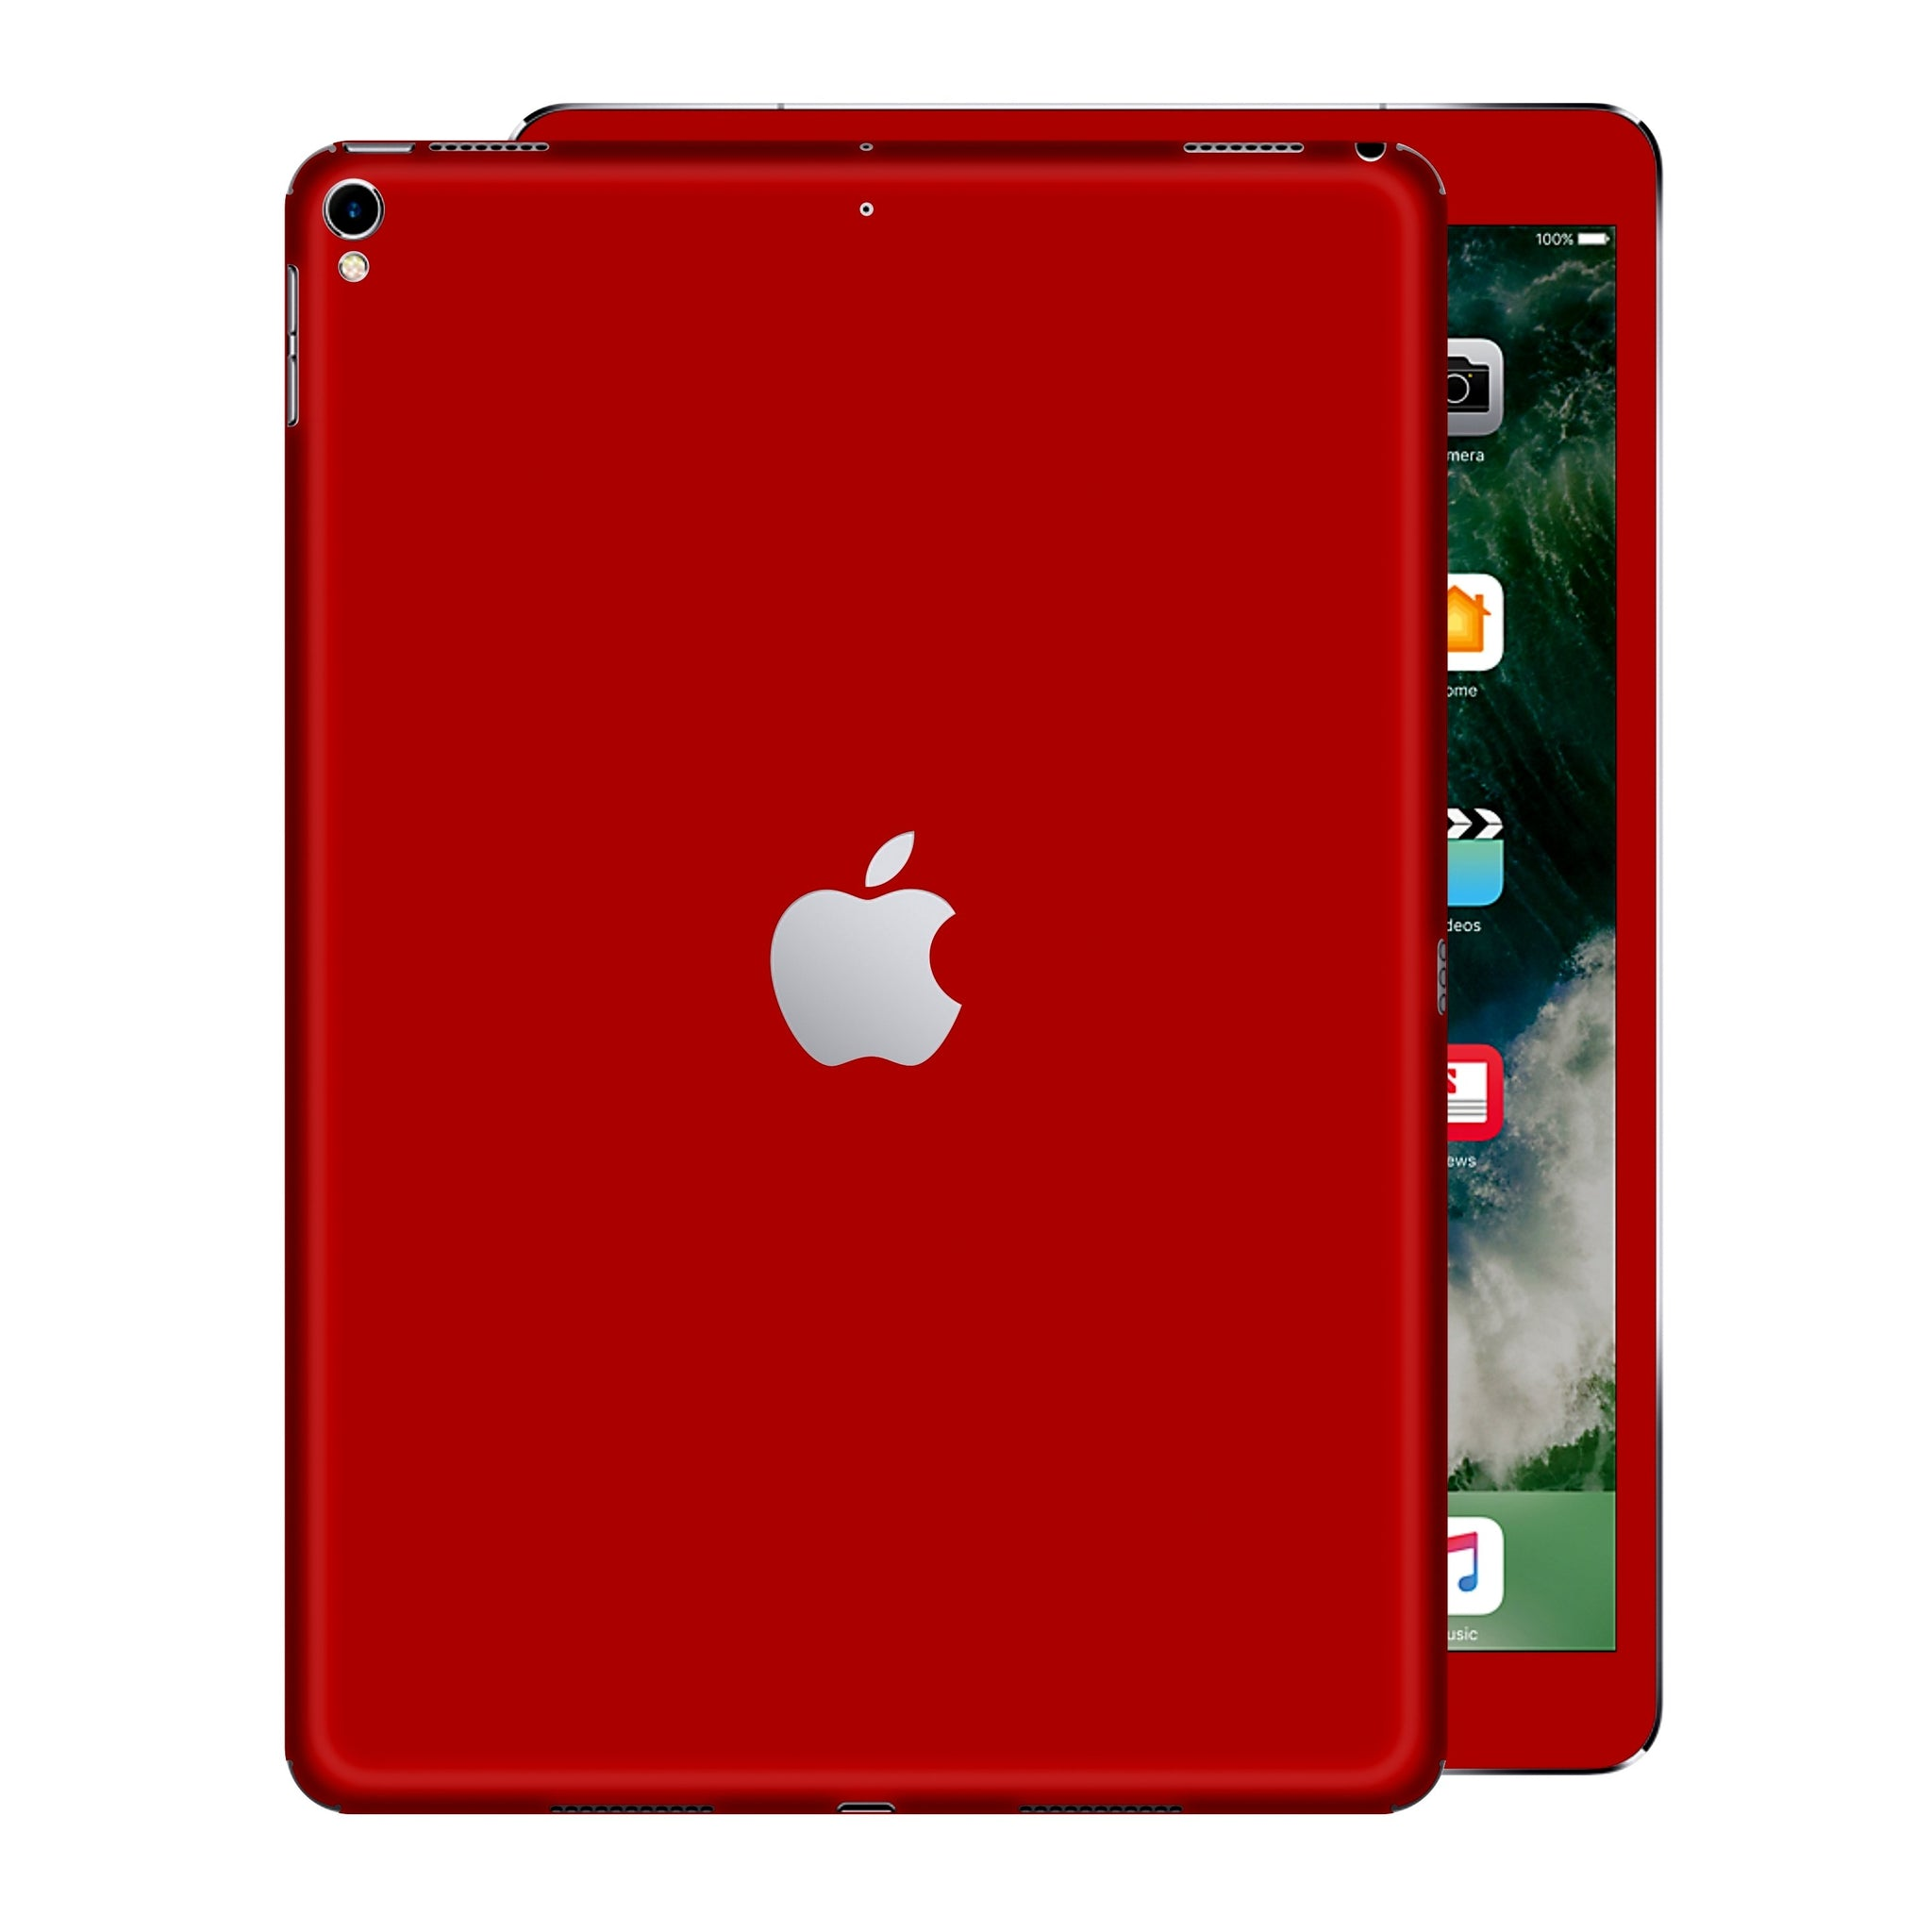 iPad PRO 12.9 inch 2017 Glossy Deep Red Skin Wrap Sticker Decal Cover Protector by EasySkinz